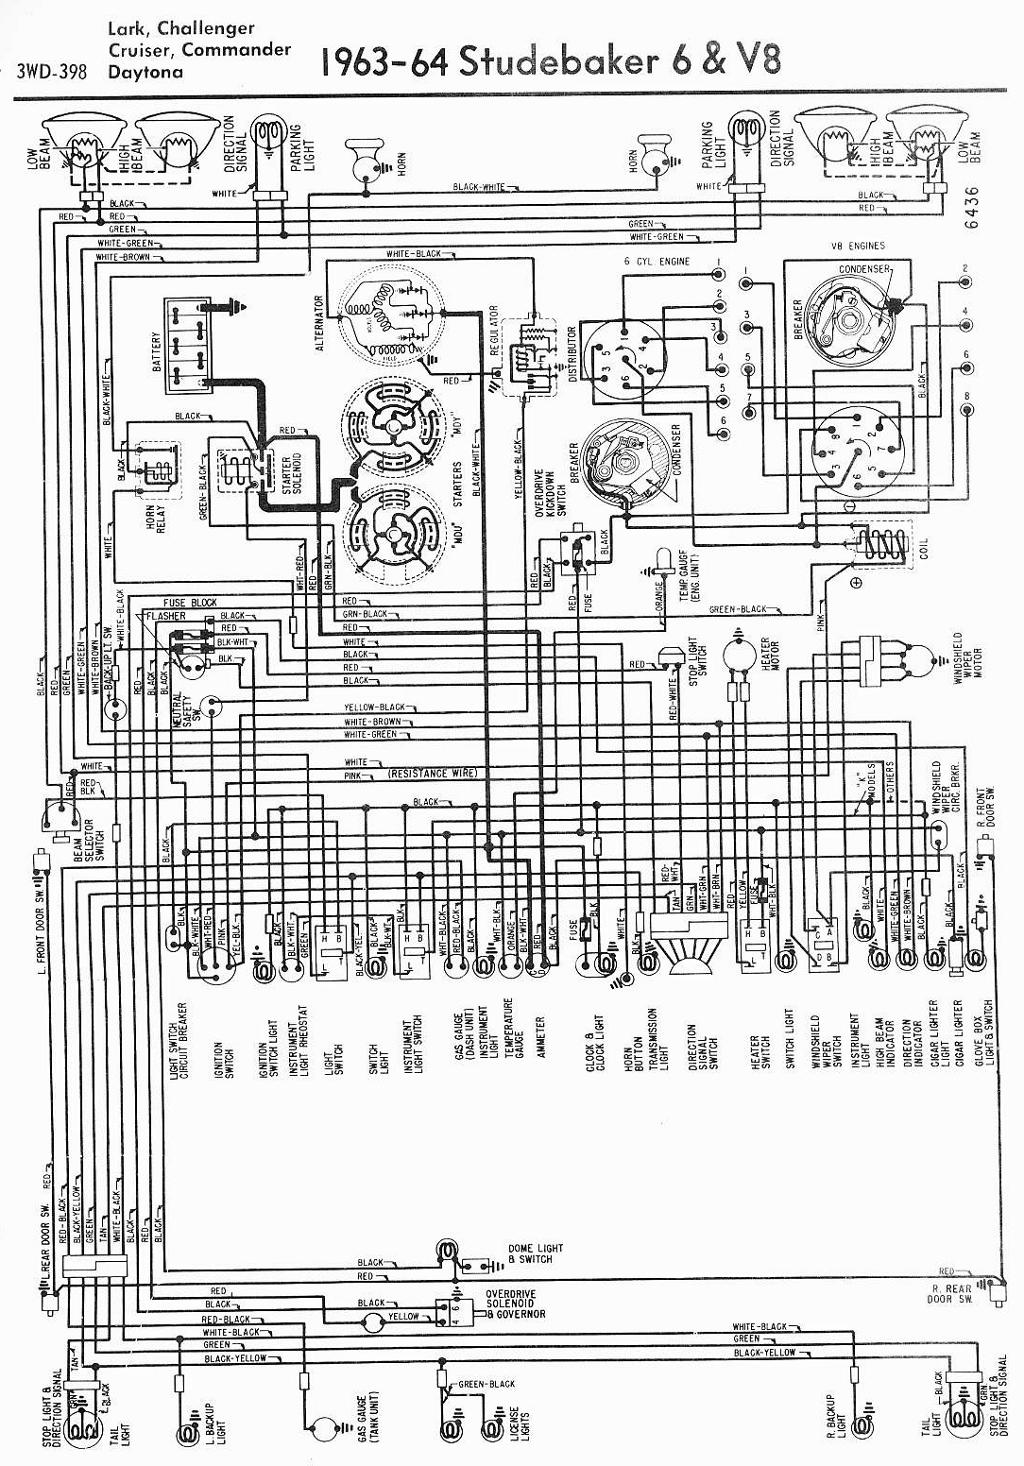 1962 Studebaker Wiring Diagrams - All Wiring Diagram